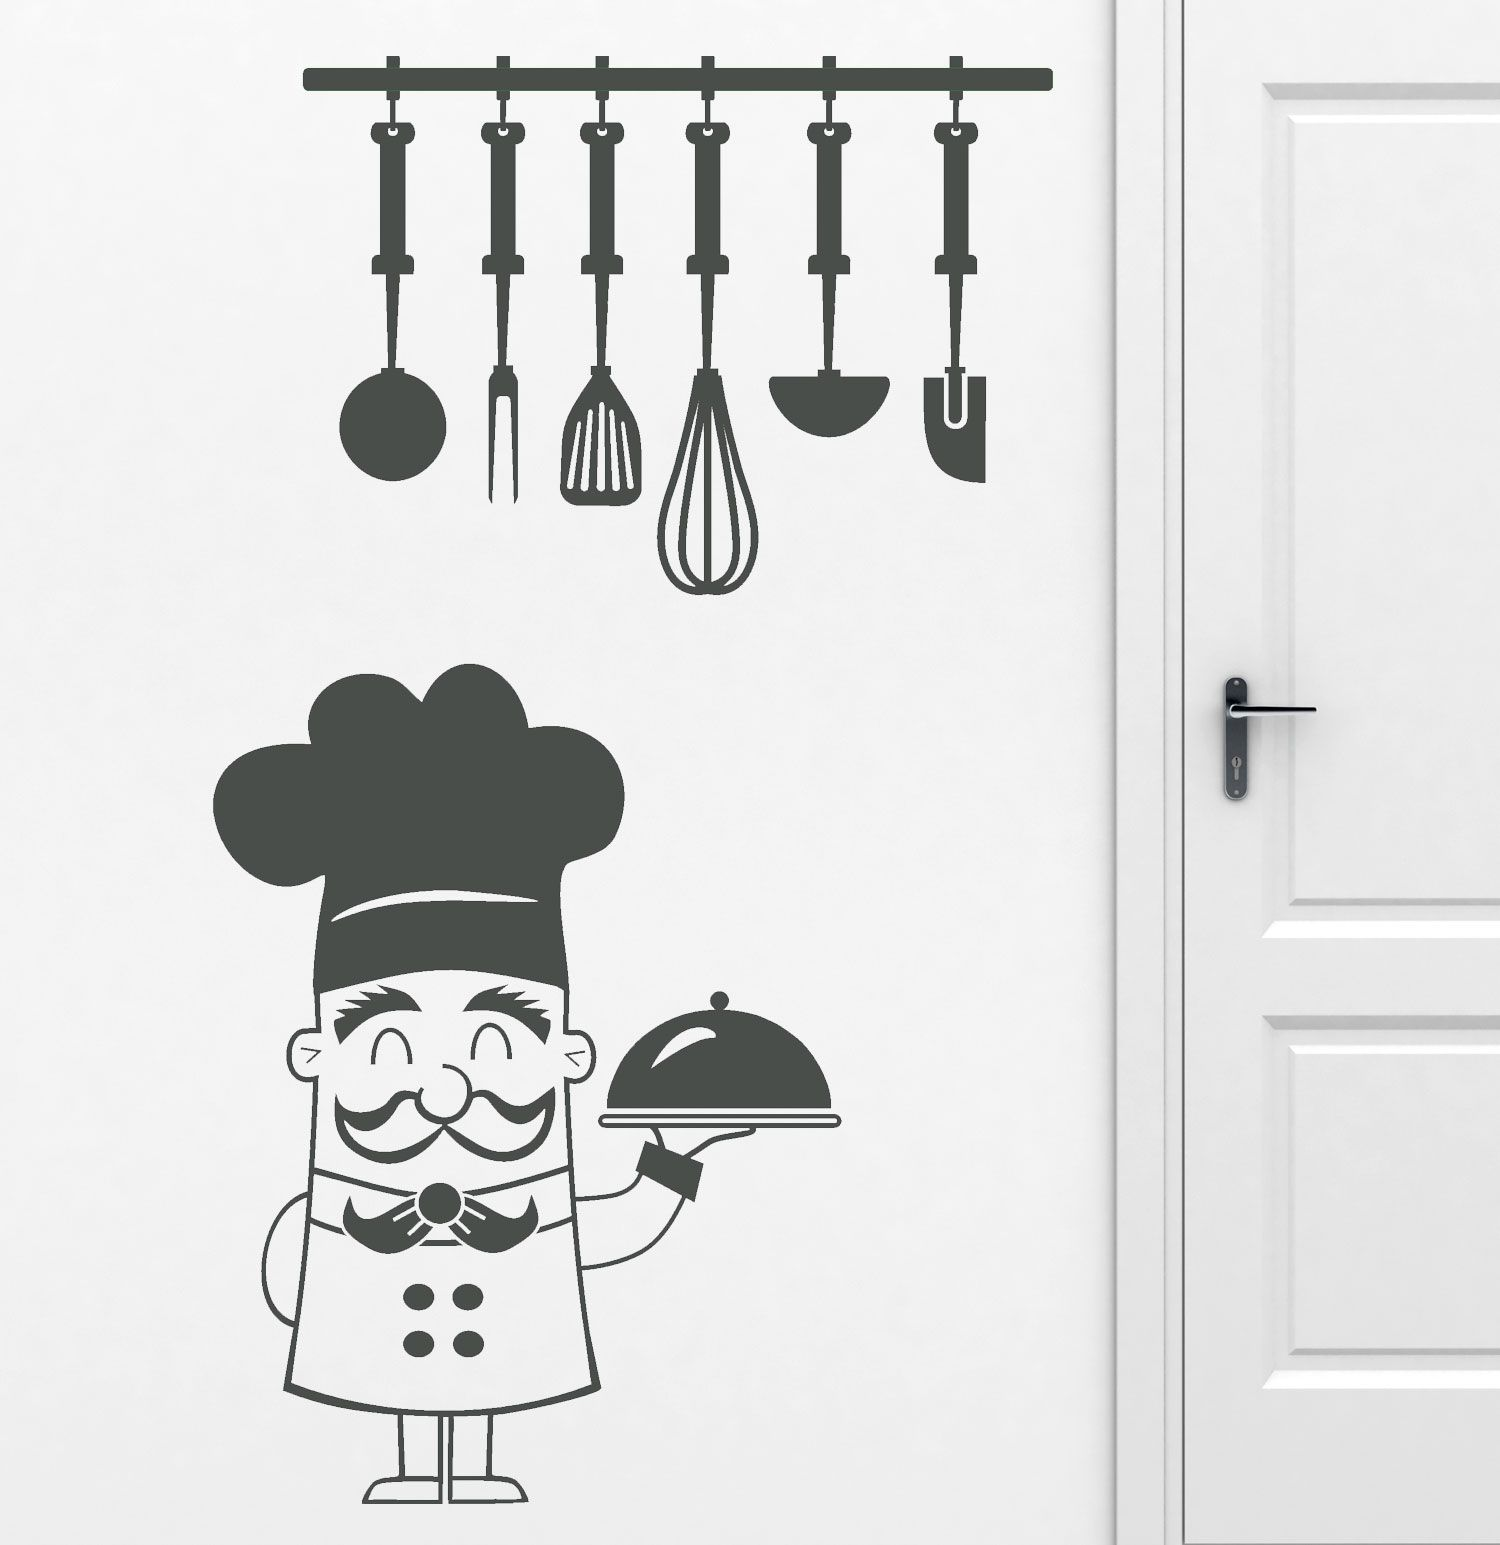 Decoracion Cocinas Vinilos Decorativos Chef Vinilos Pinterest Wall Kitchen Decor Y Diy